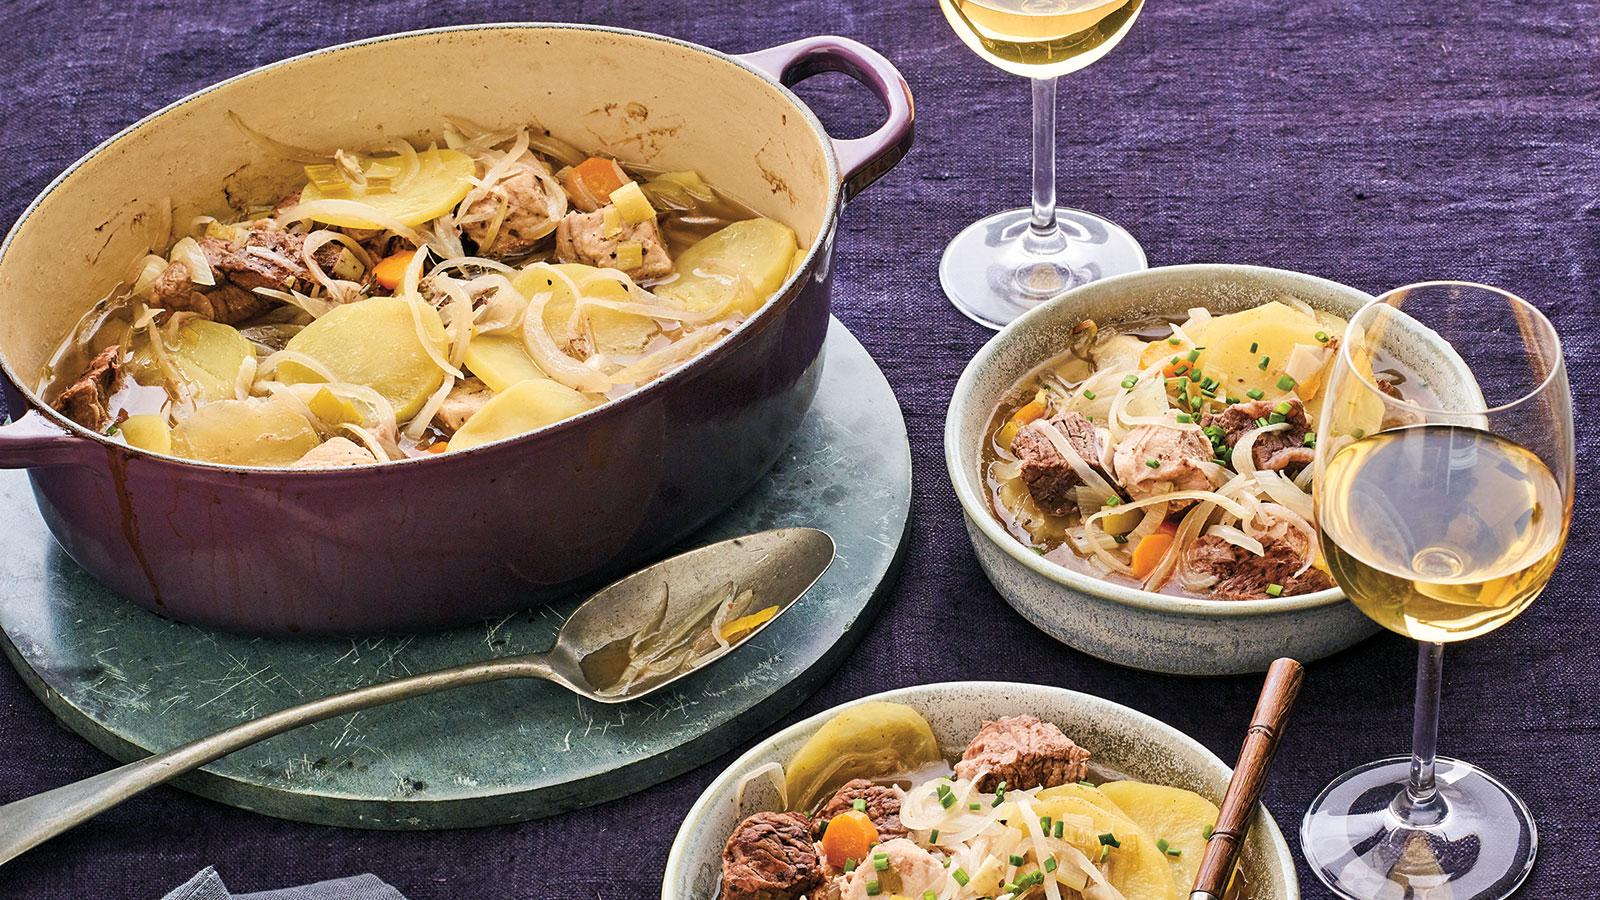 Perfect Match: Meat, Leek and Potato Casserole